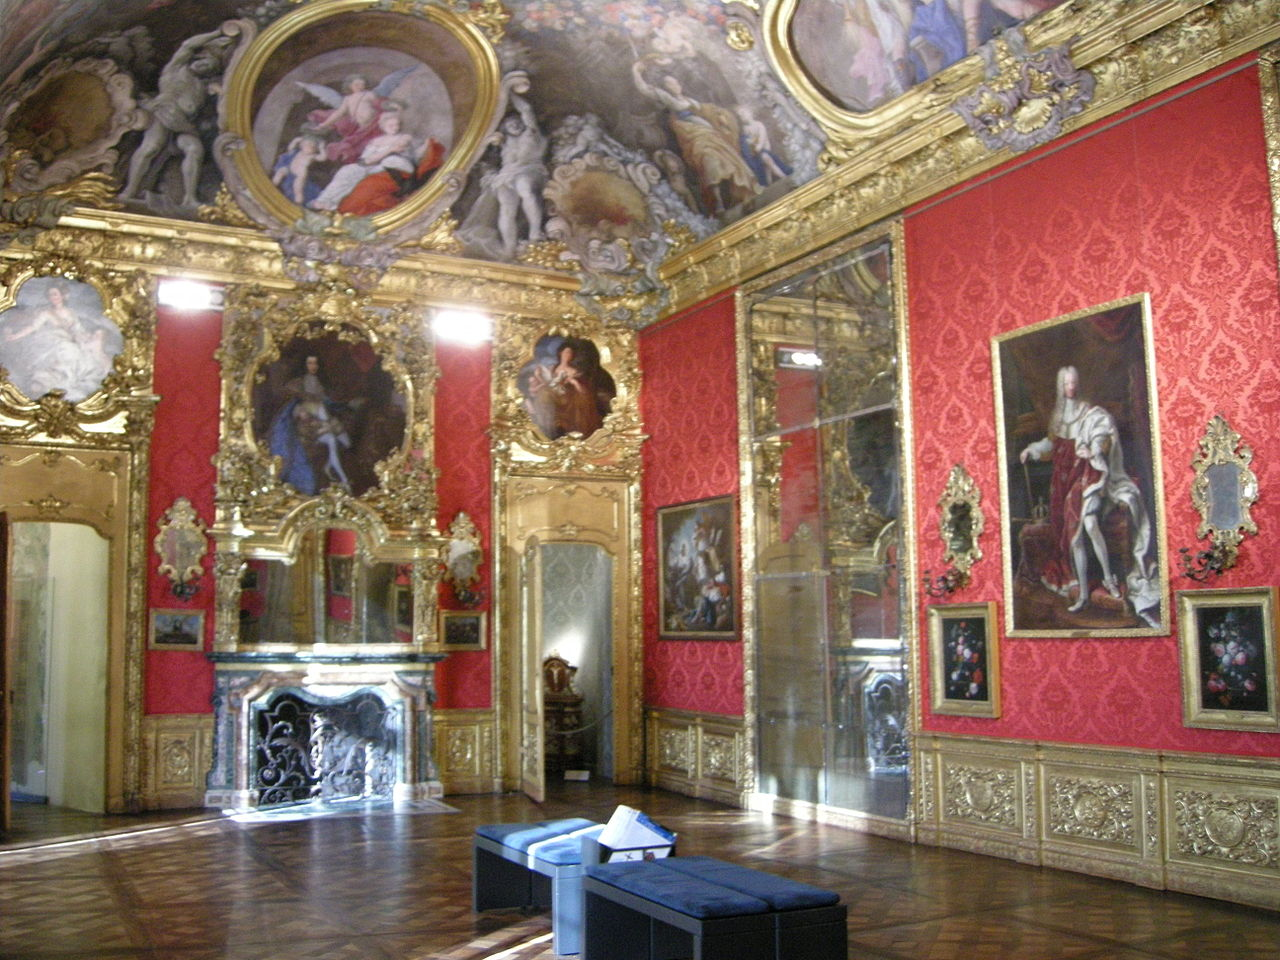 20_Palazzo Madame (Forrás: www.museireali.it)